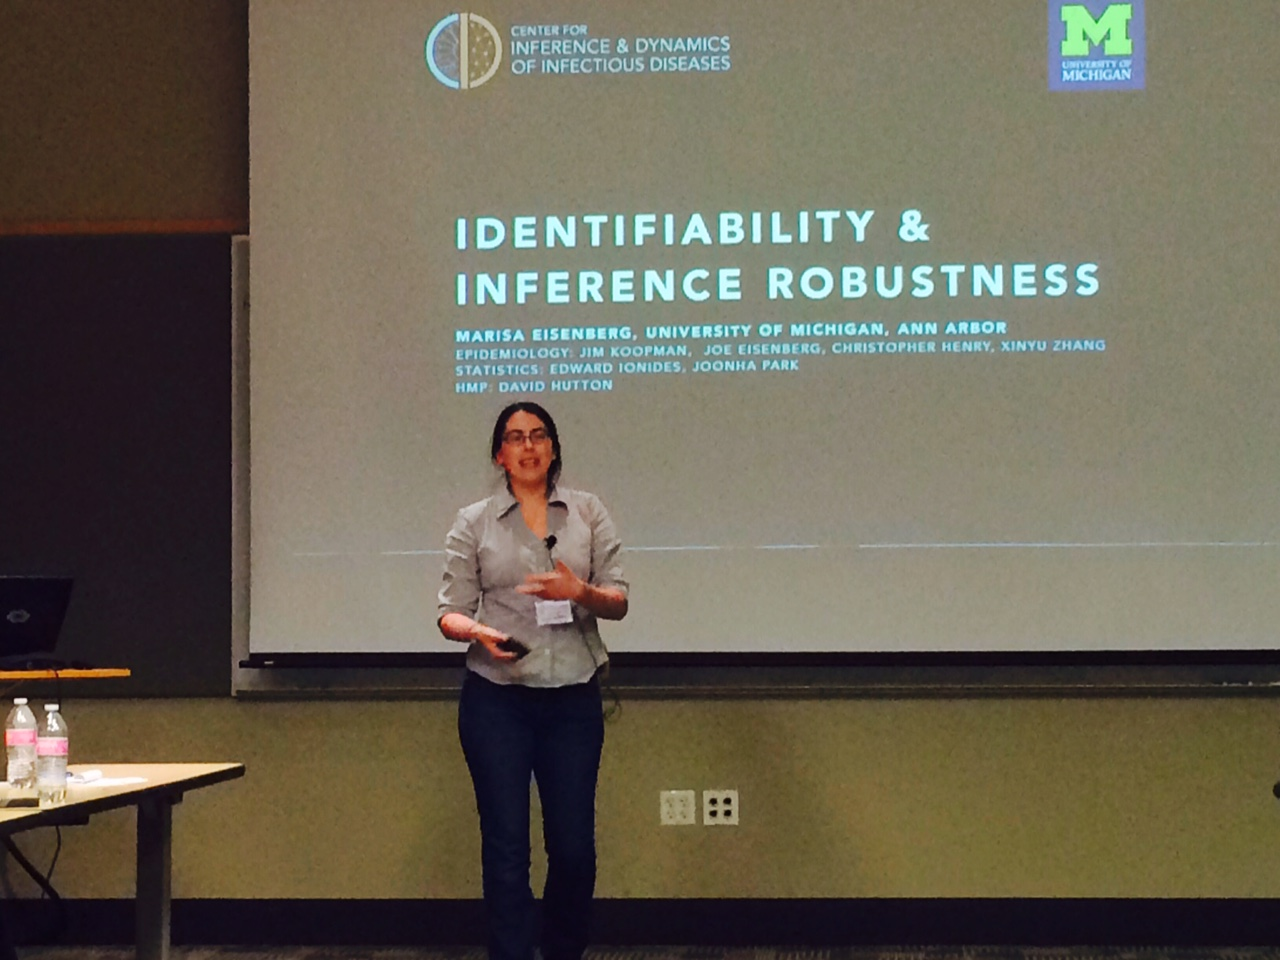 Marisa Eisenberg, one of the presenters from University of Michigan. (CIDID/Policy Studies)